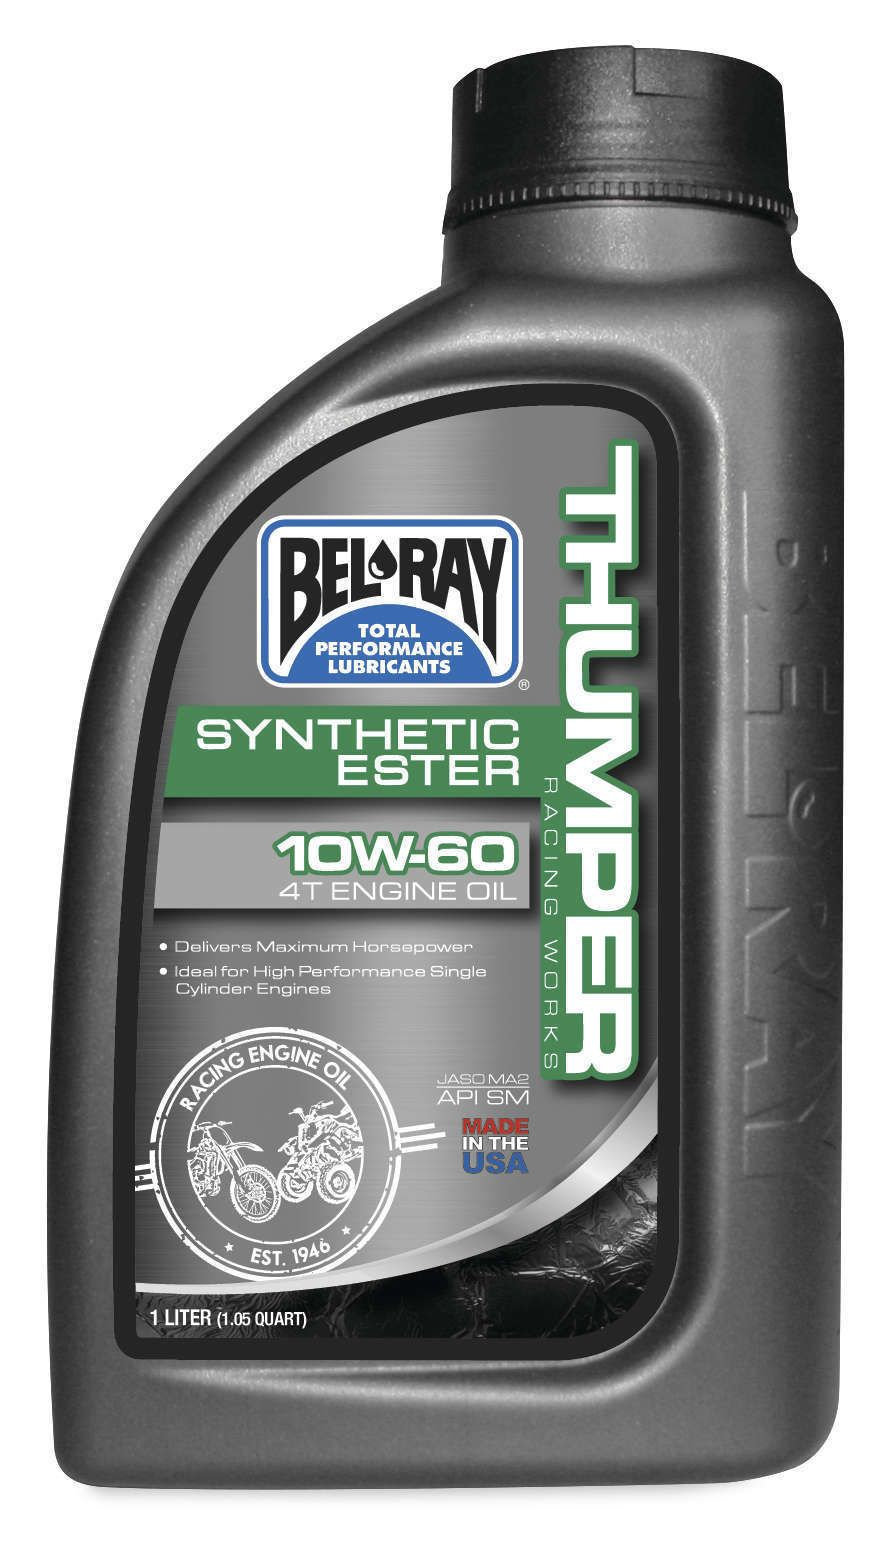 Bel ray thumper racing works synthetic ester 4t engine oil for How does motor oil work